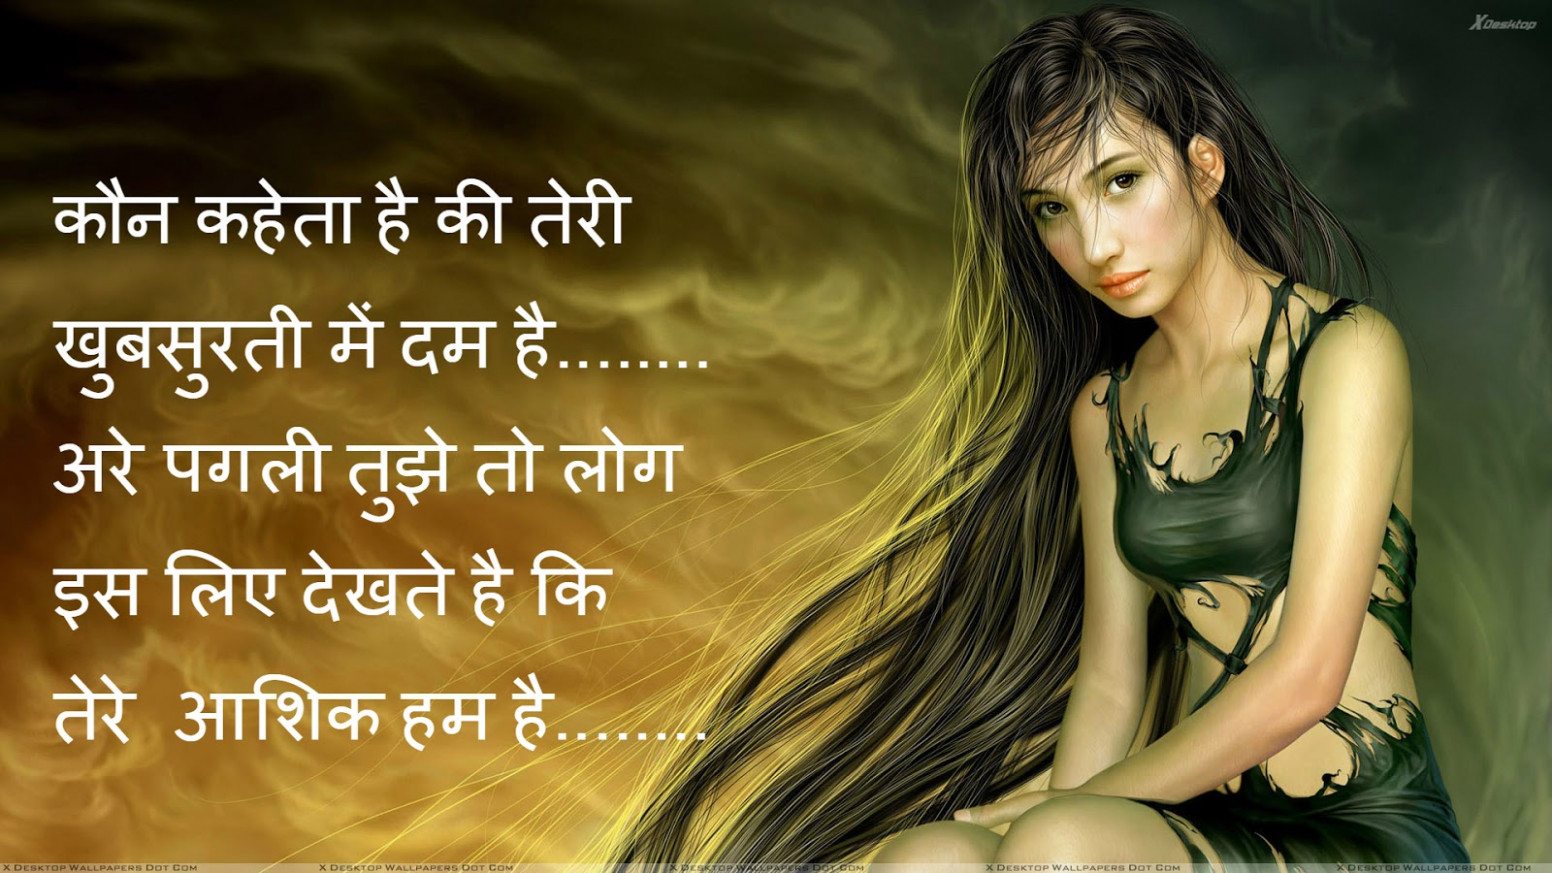 New Letest and best LOVE shayari hd photos And hd ...